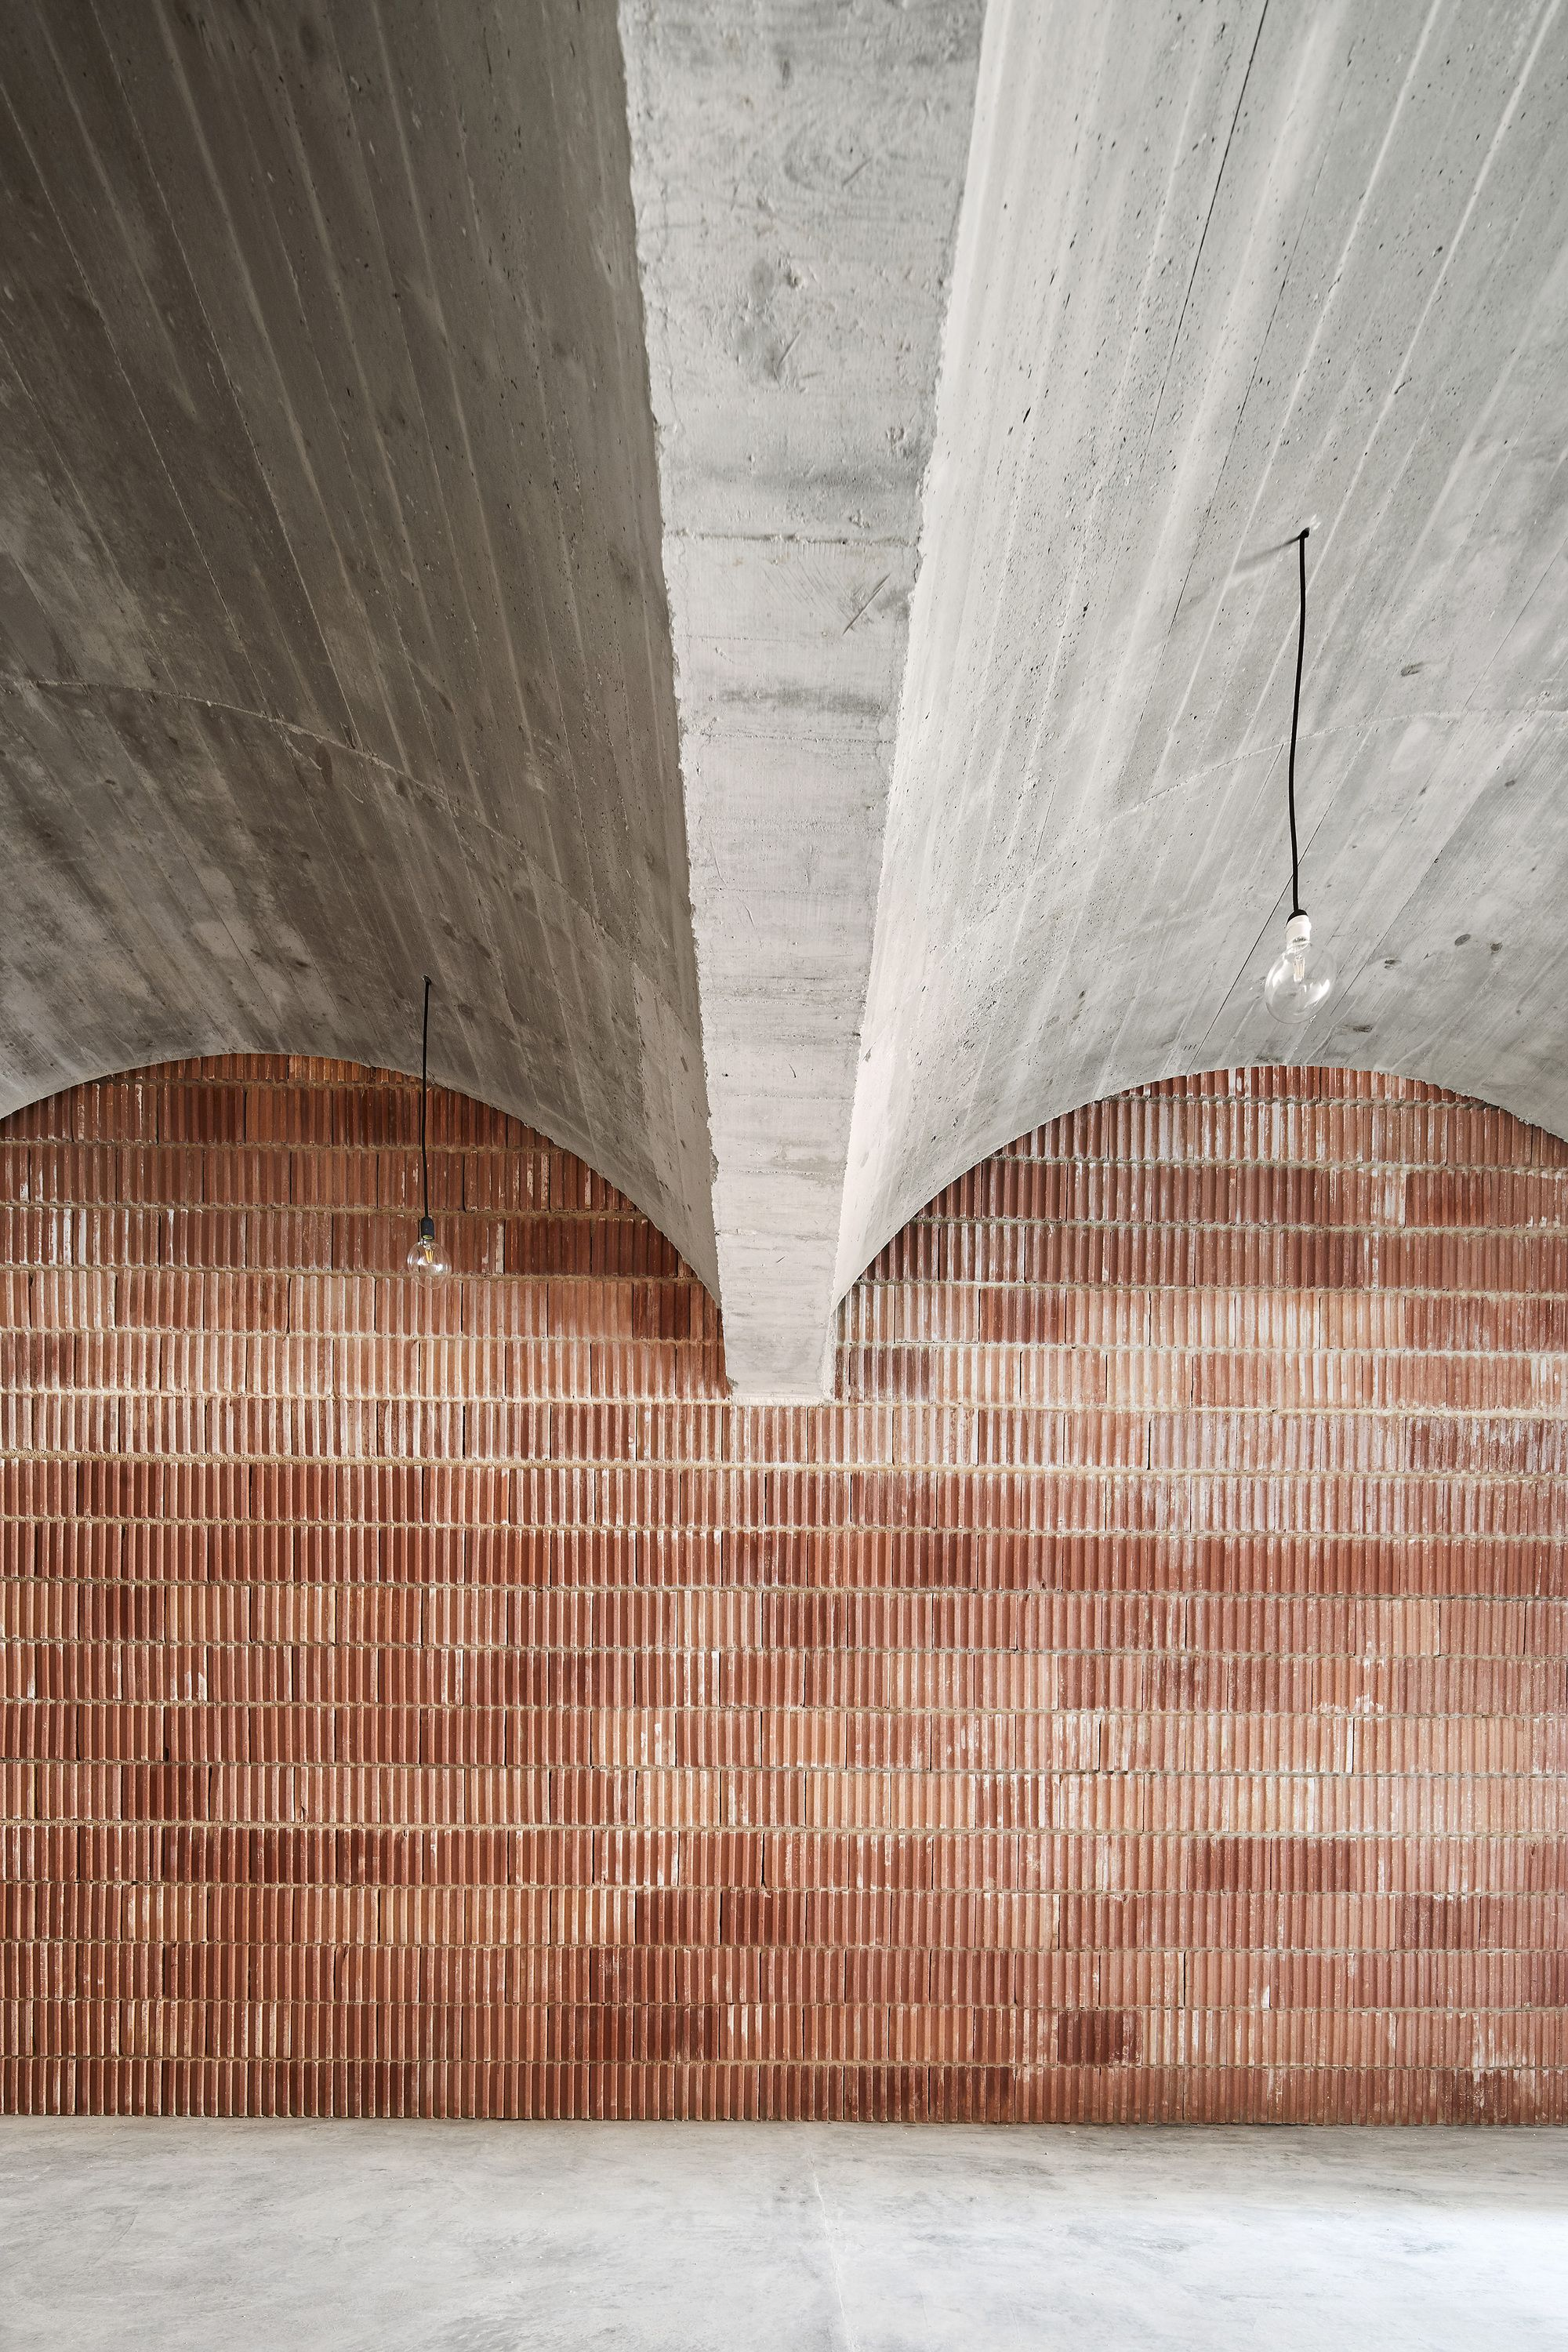 Gallery Of Municipal Archive Aulets Arquitectes 12 Concrete Architecture Brick Architecture Architecture